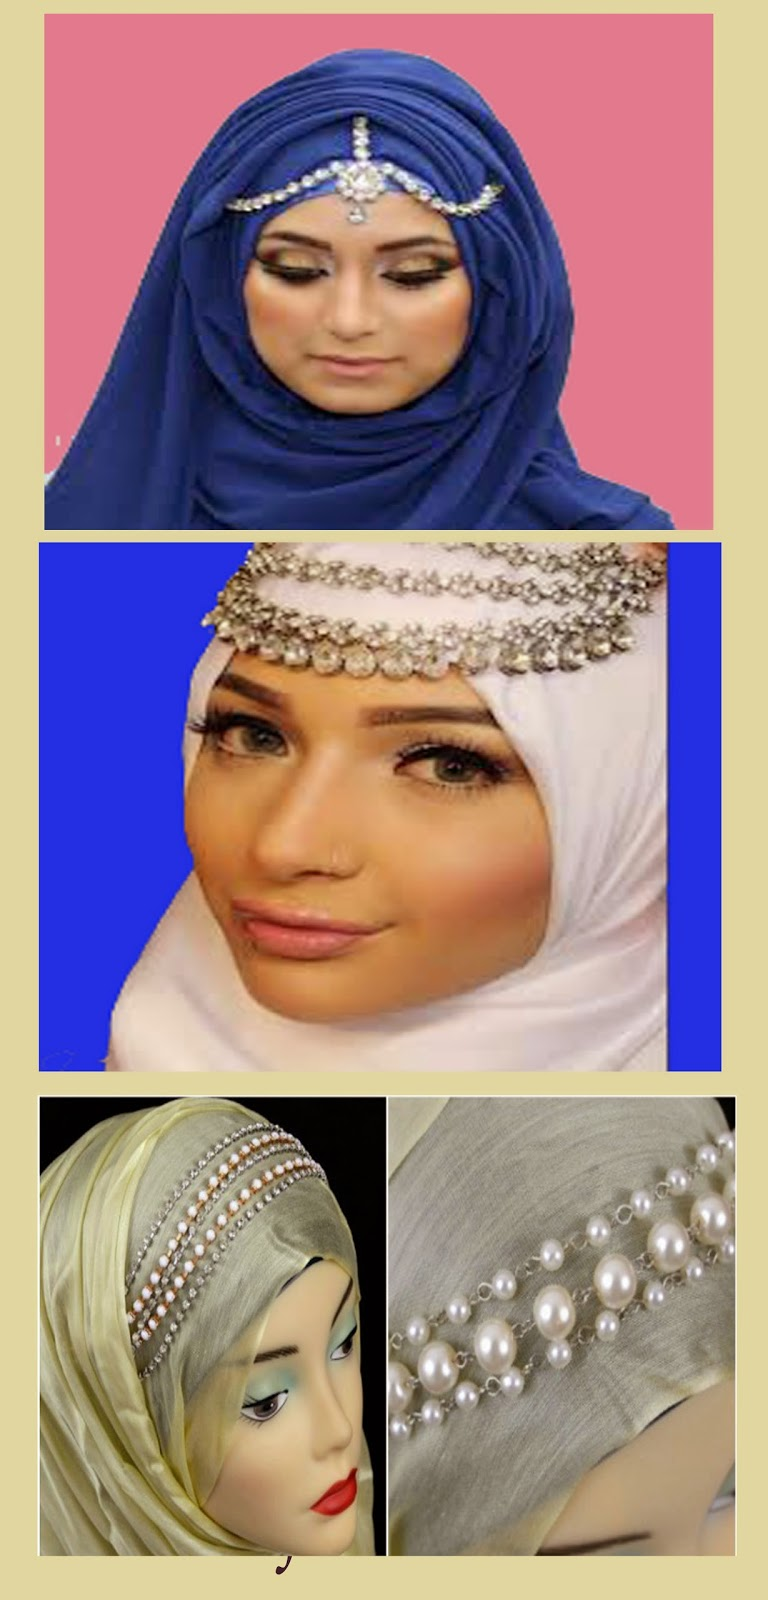 LIFE STYLE OF MUSLIMAH